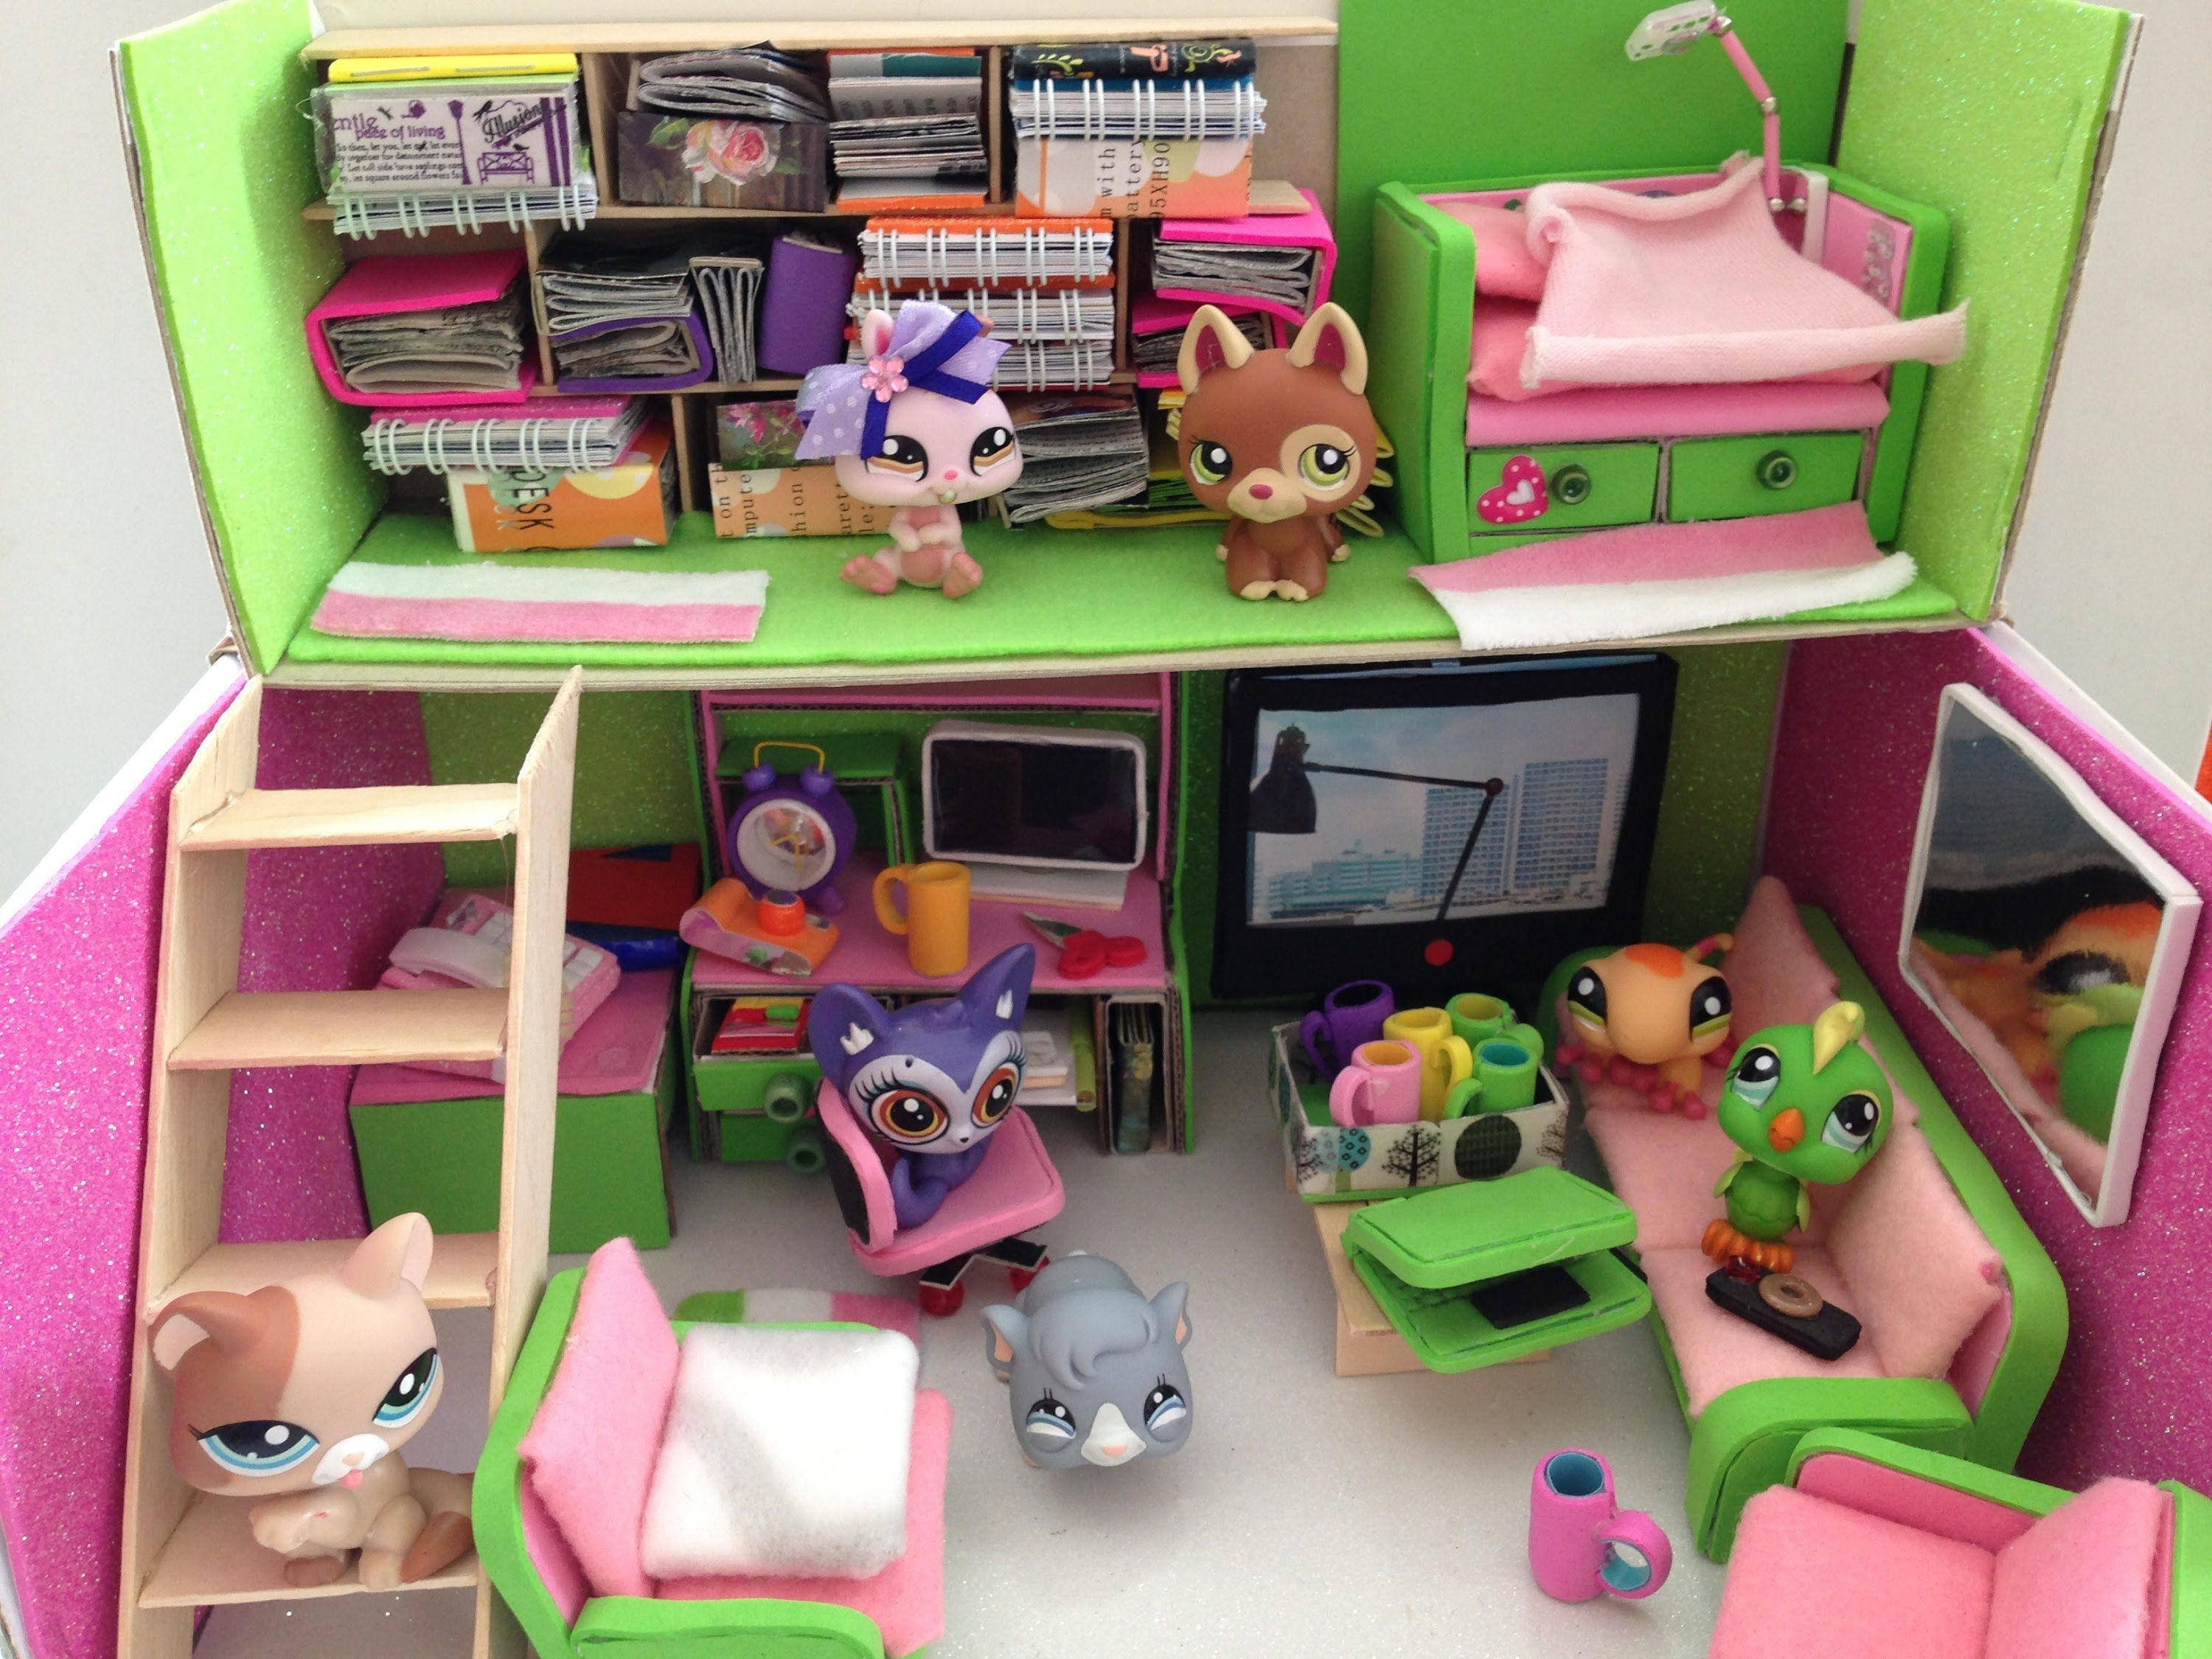 How To Make A Lps Doll Room Loft Lps Crafts Lps Accessories Lps Diy Accessories